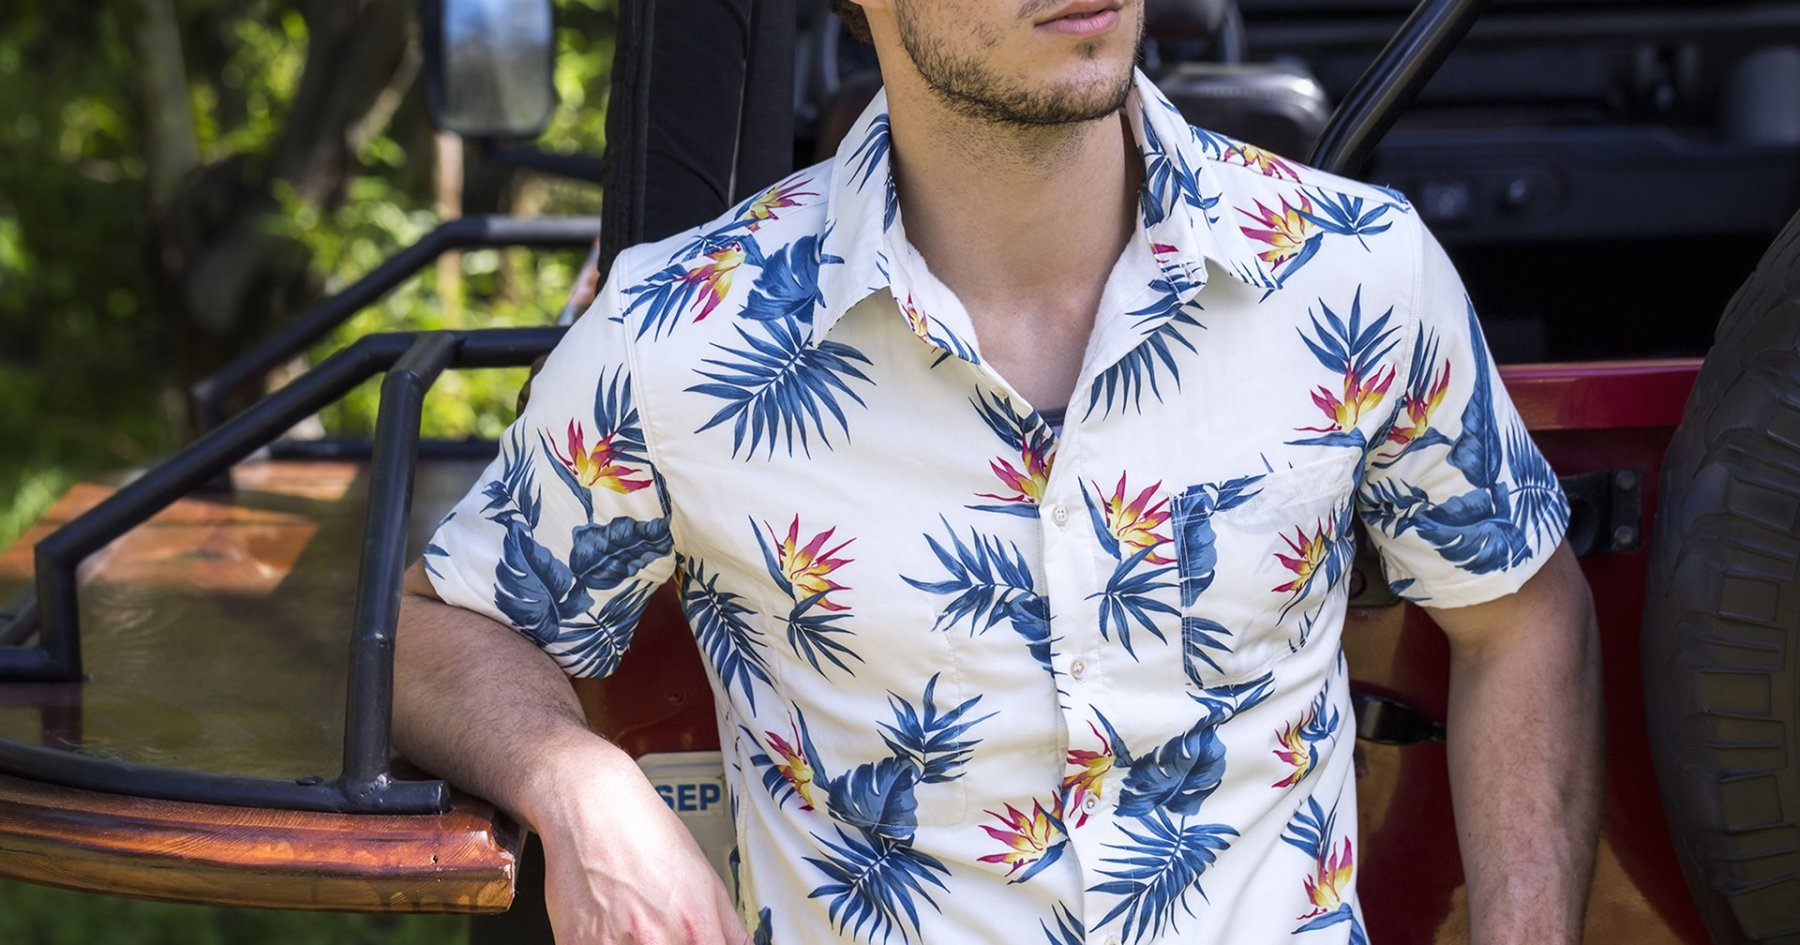 Say Hello to Your New Pool Party Shirt